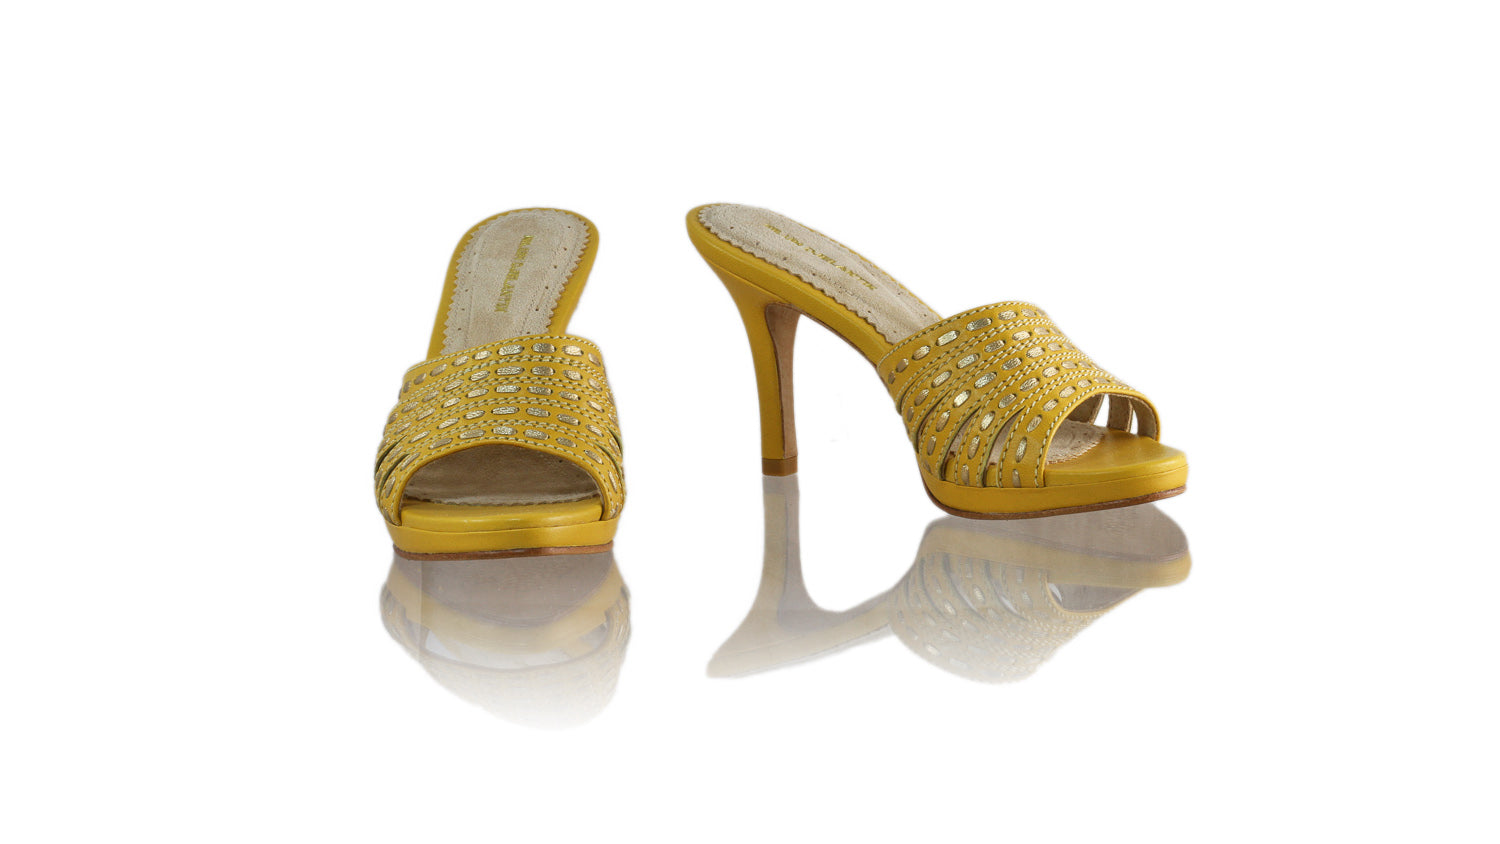 Leather-shoes-Evita 90MM SH-01 PF - Yellow & Gold-sandals higheel-NILUH DJELANTIK-NILUH DJELANTIK